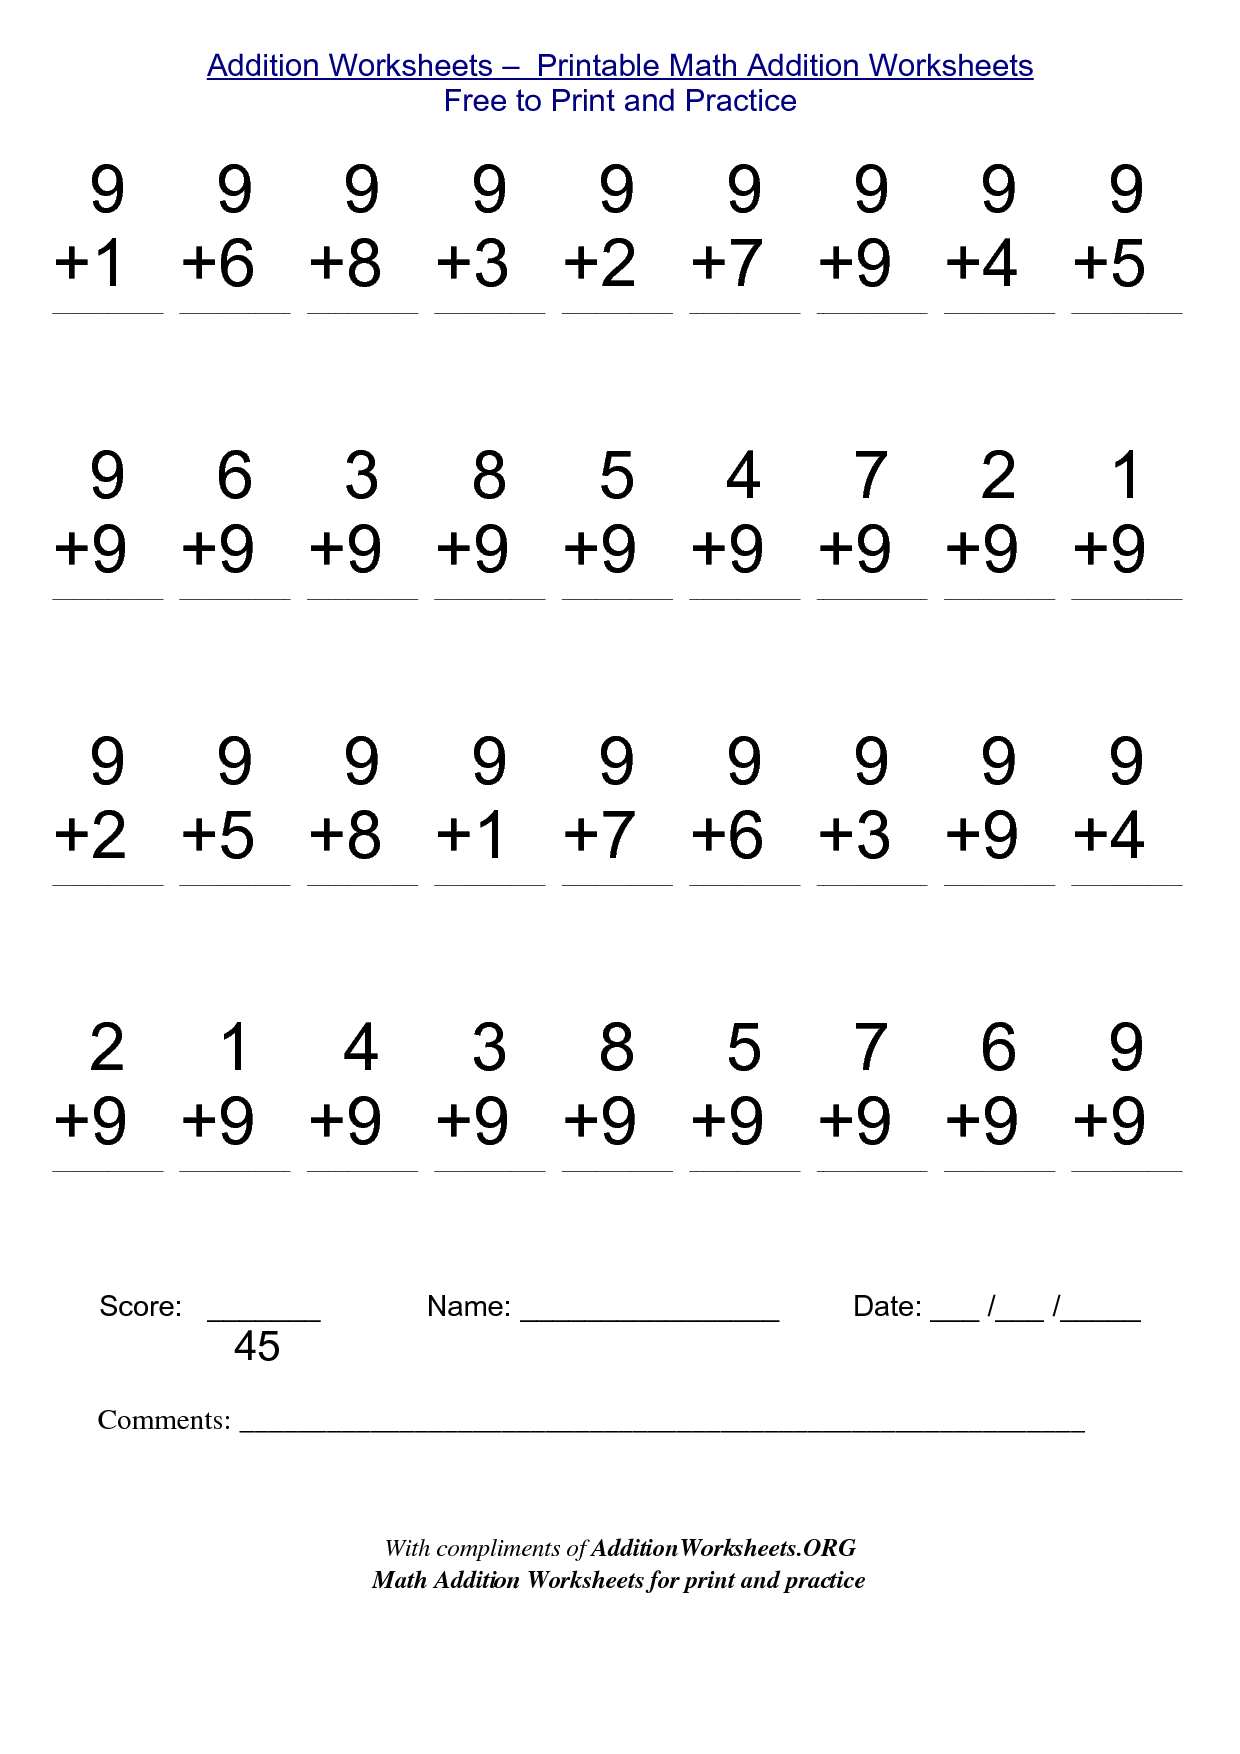 Printables Printable Math Worksheets 1st Grade 1st grade math worksheets printable addition intrepidpath 4 best images of printable